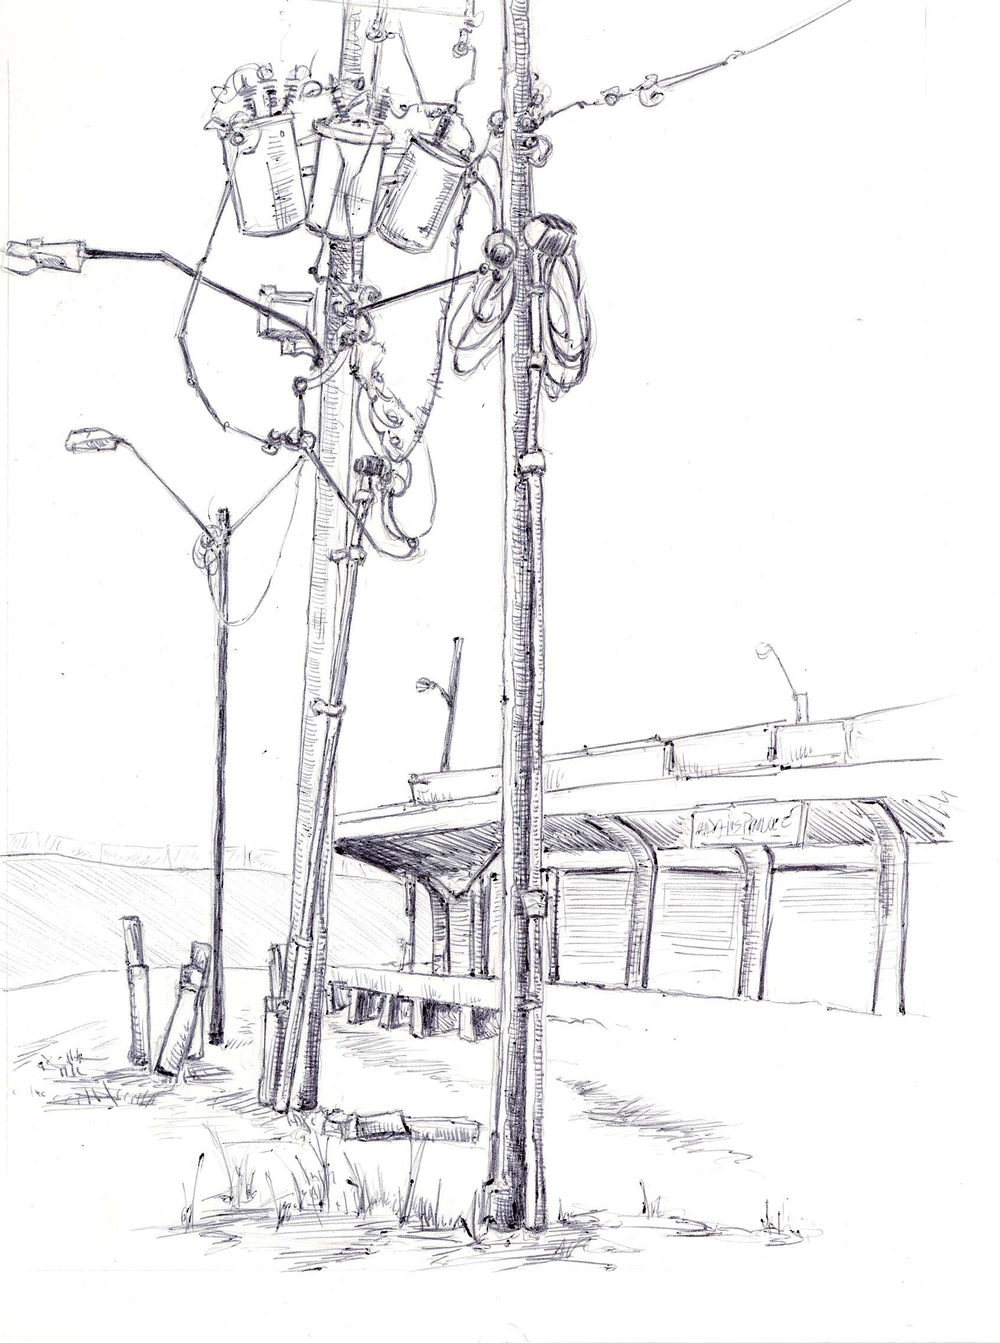 "Wires, Old Farmer's Market, 4"" 6"", ball point pen, 2014"